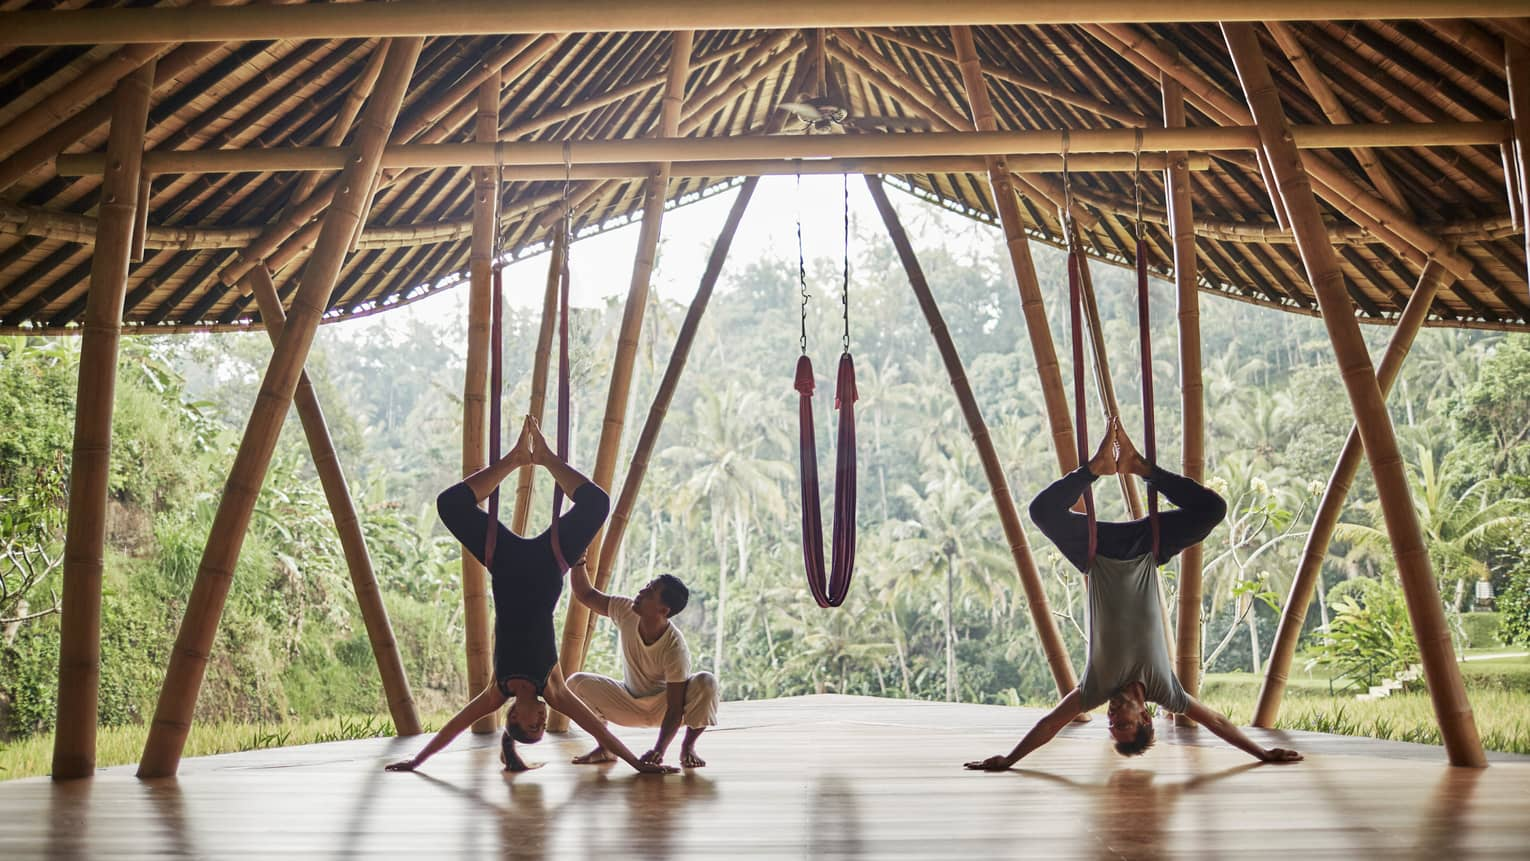 Antigravity Yoga at a yoga pavilion in Bali